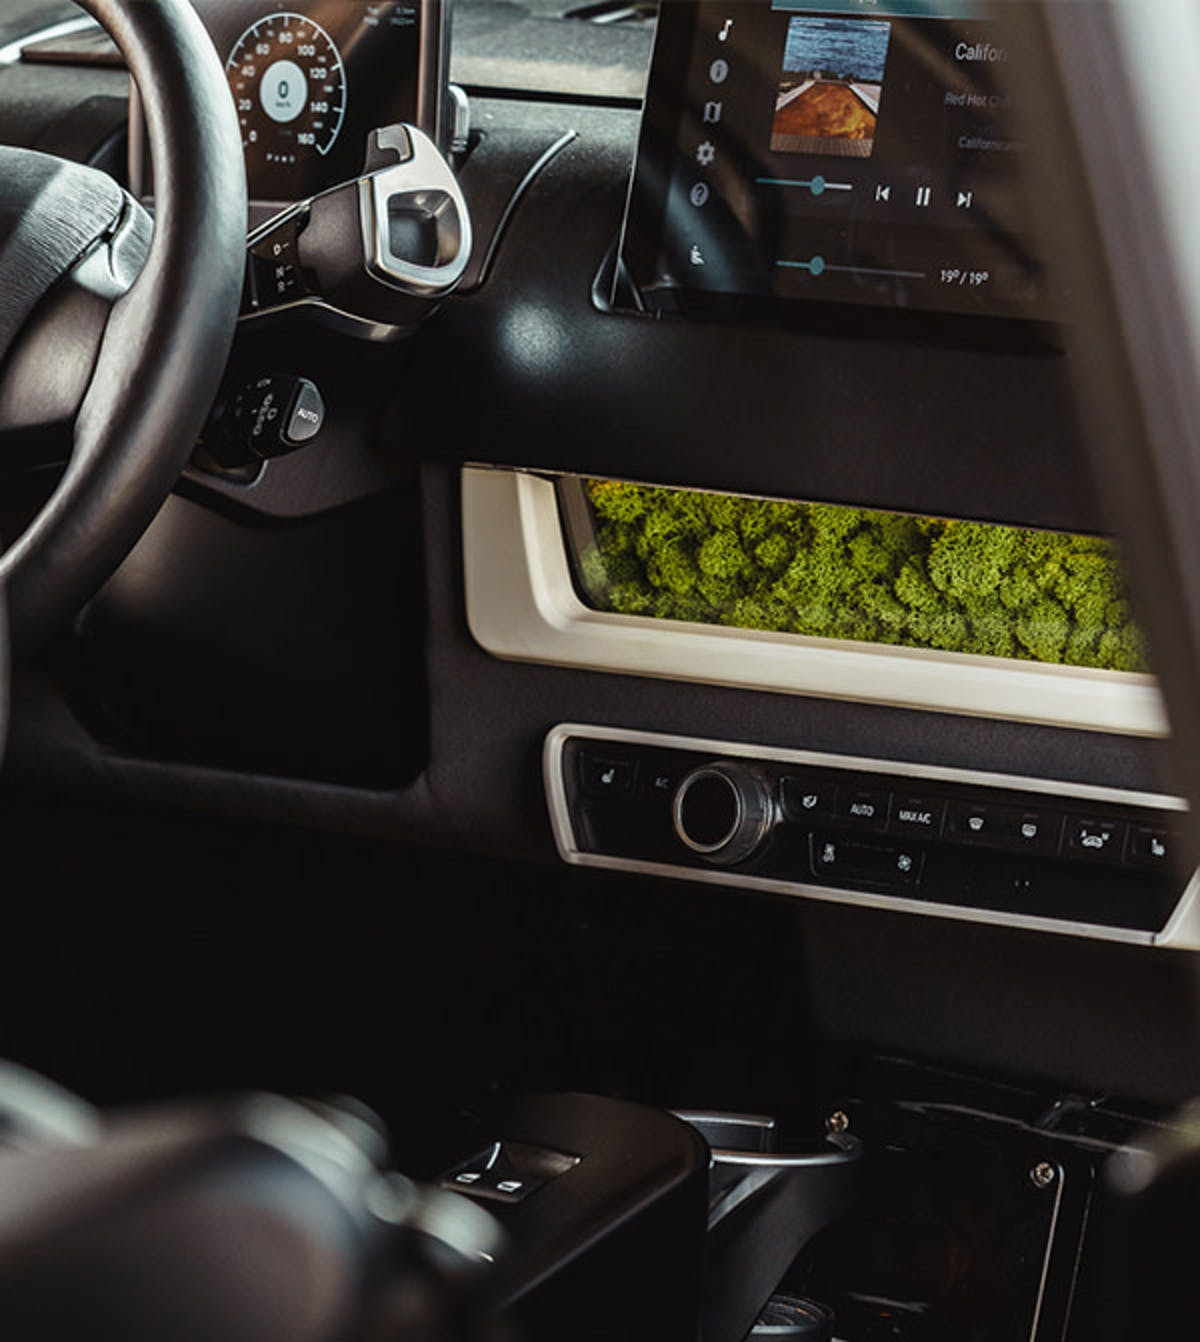 The moss filter on the dashboard.